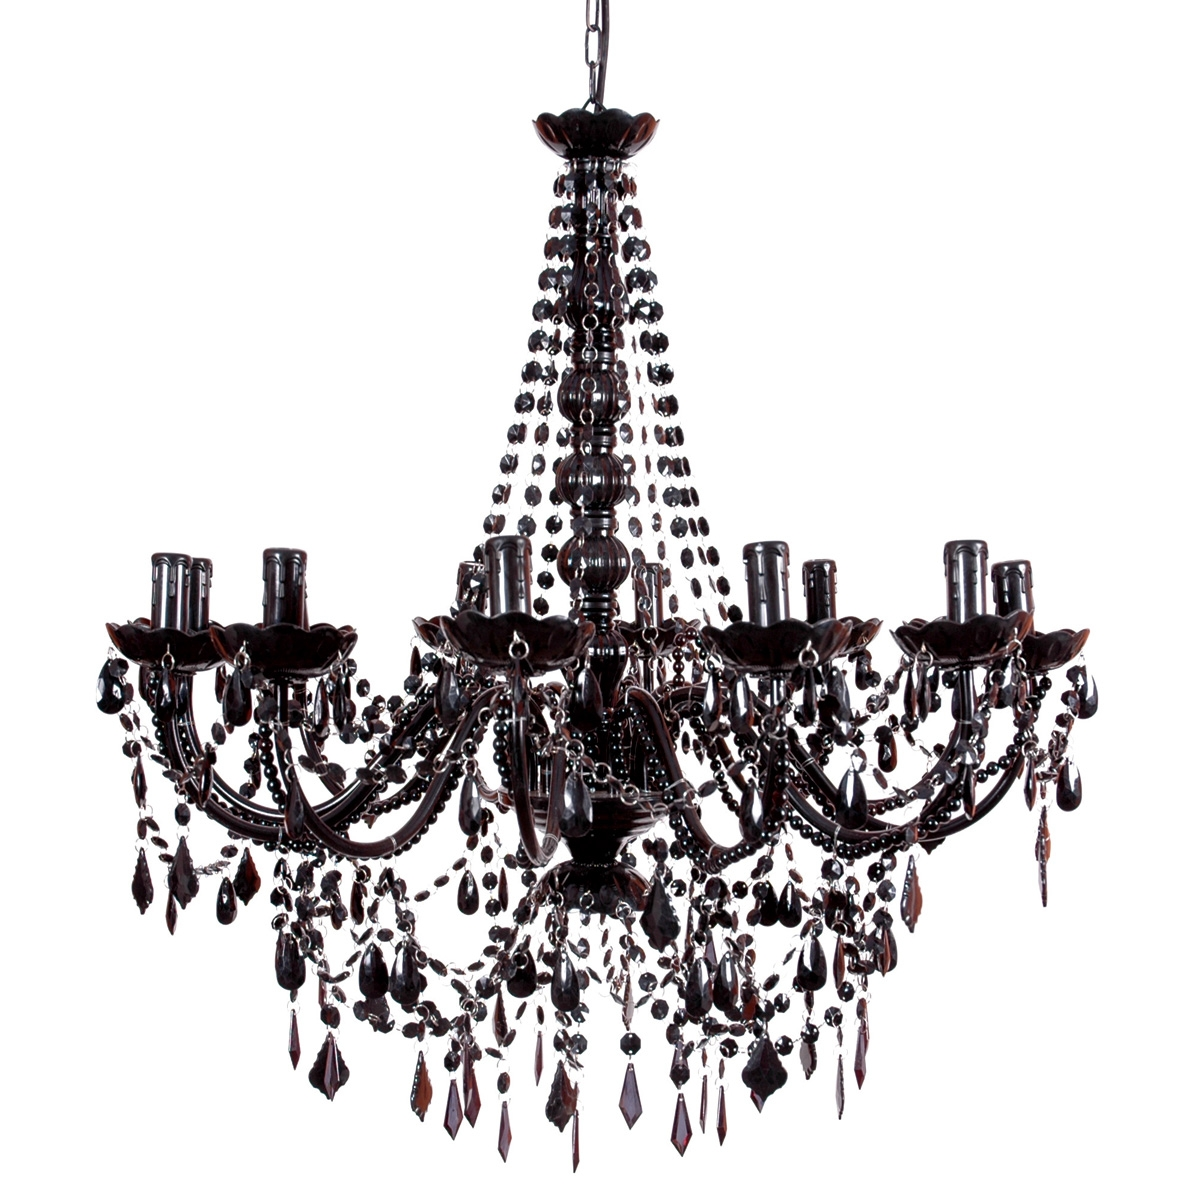 Black Chandeliers For And Chandelier Bedroom Modern Crystal Home Regarding Black Chandeliers (#3 of 12)